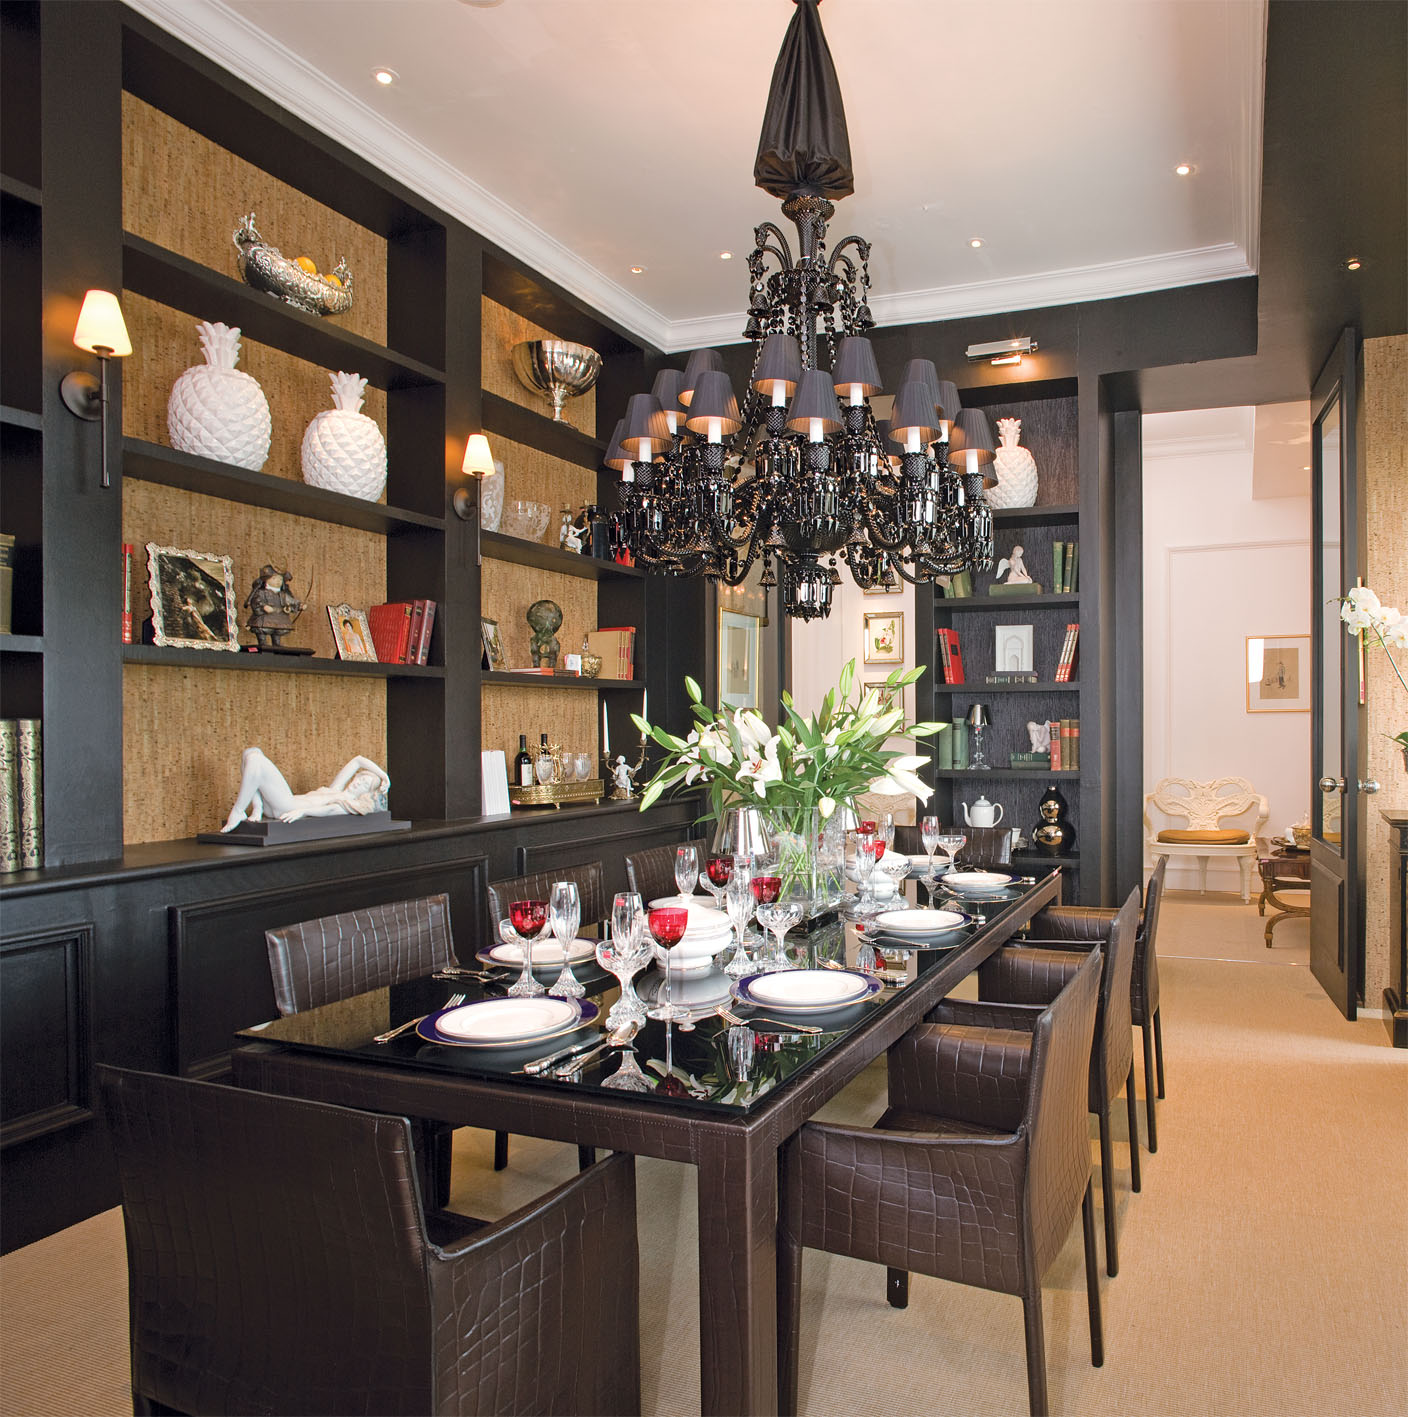 Apartement: Home Interior Design: Design Inspiration From Park Avenue